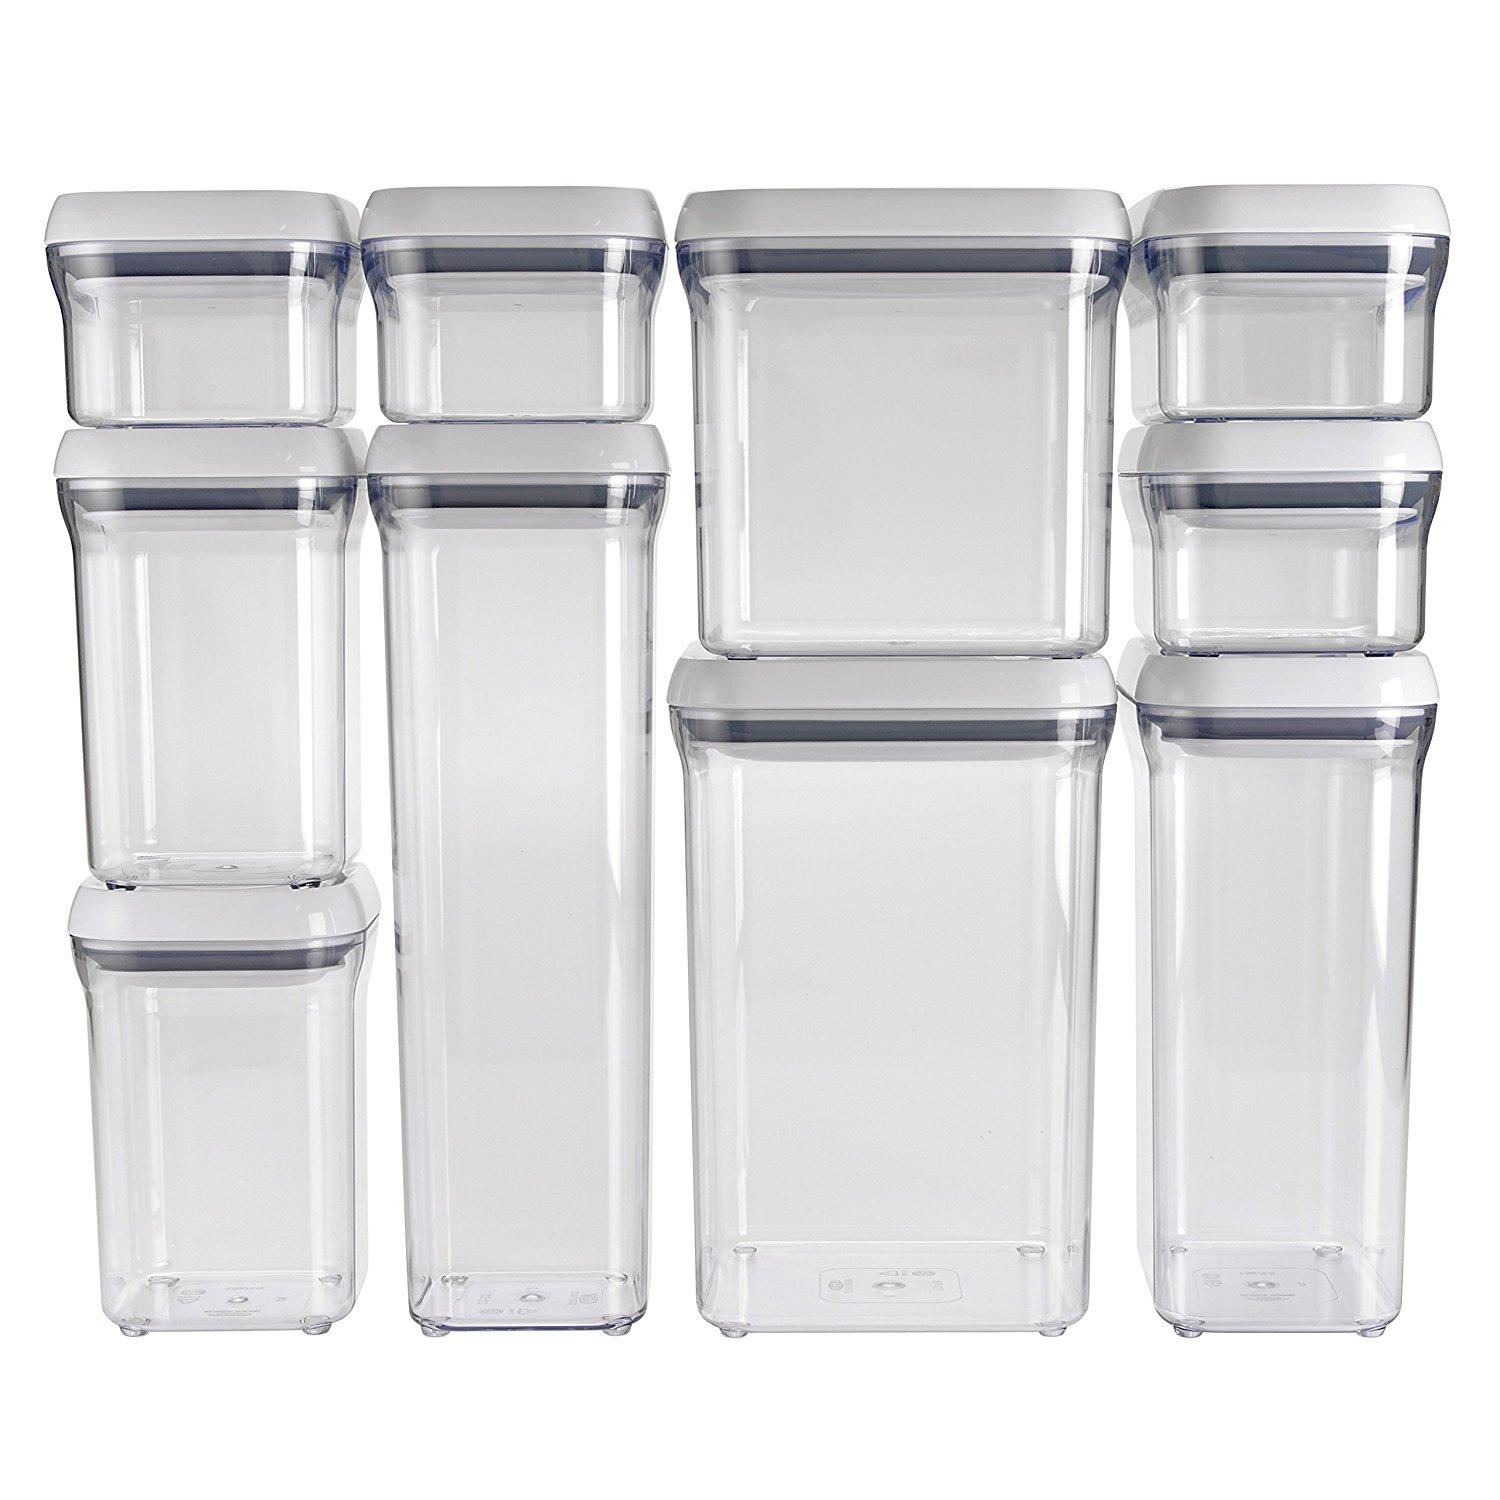 OXO Good Grips 10-Piece Container Set